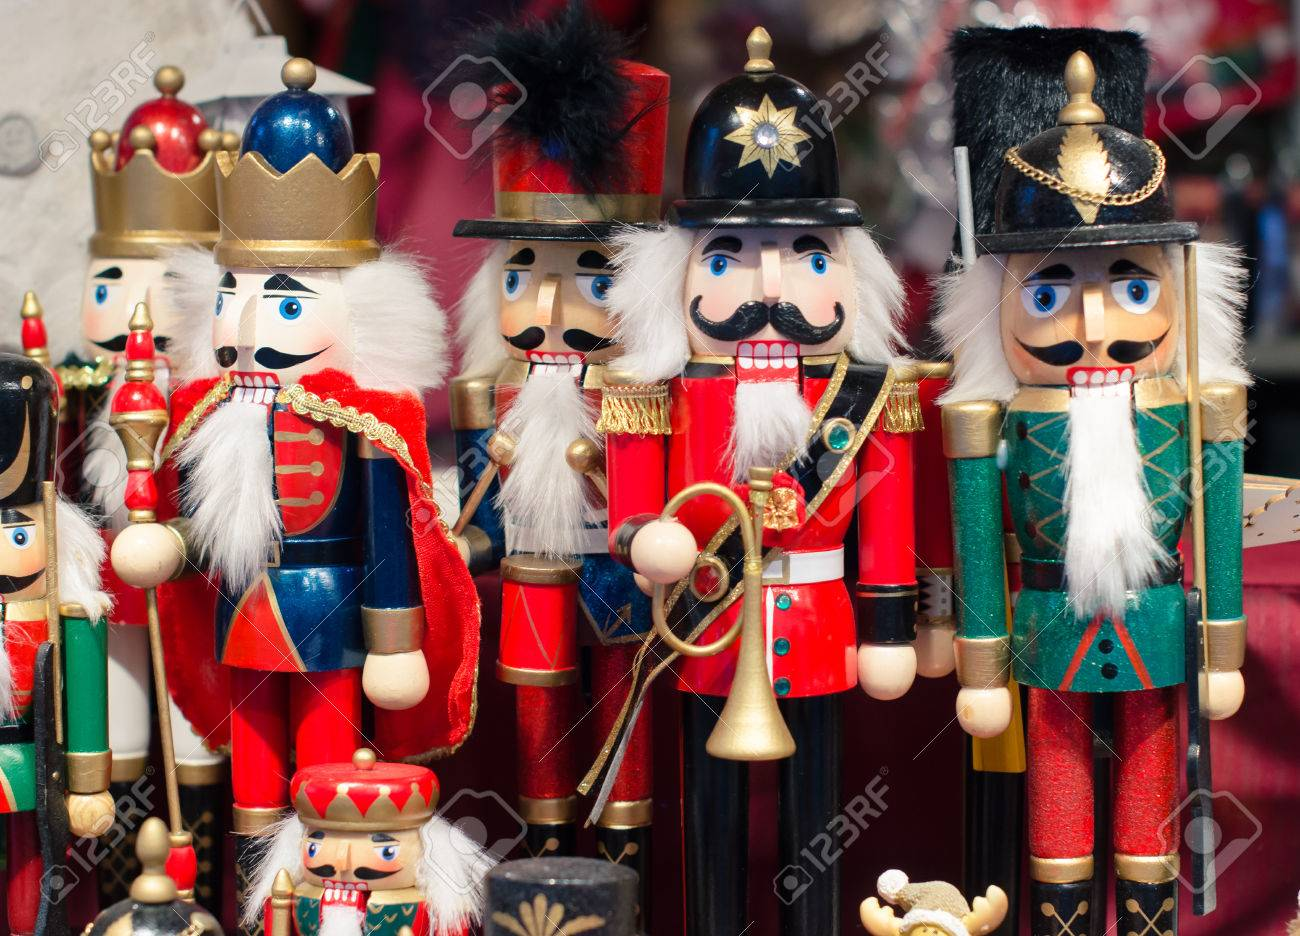 Christmas Market In Details. Christmas Toy - Wooden Nutcrackers ...